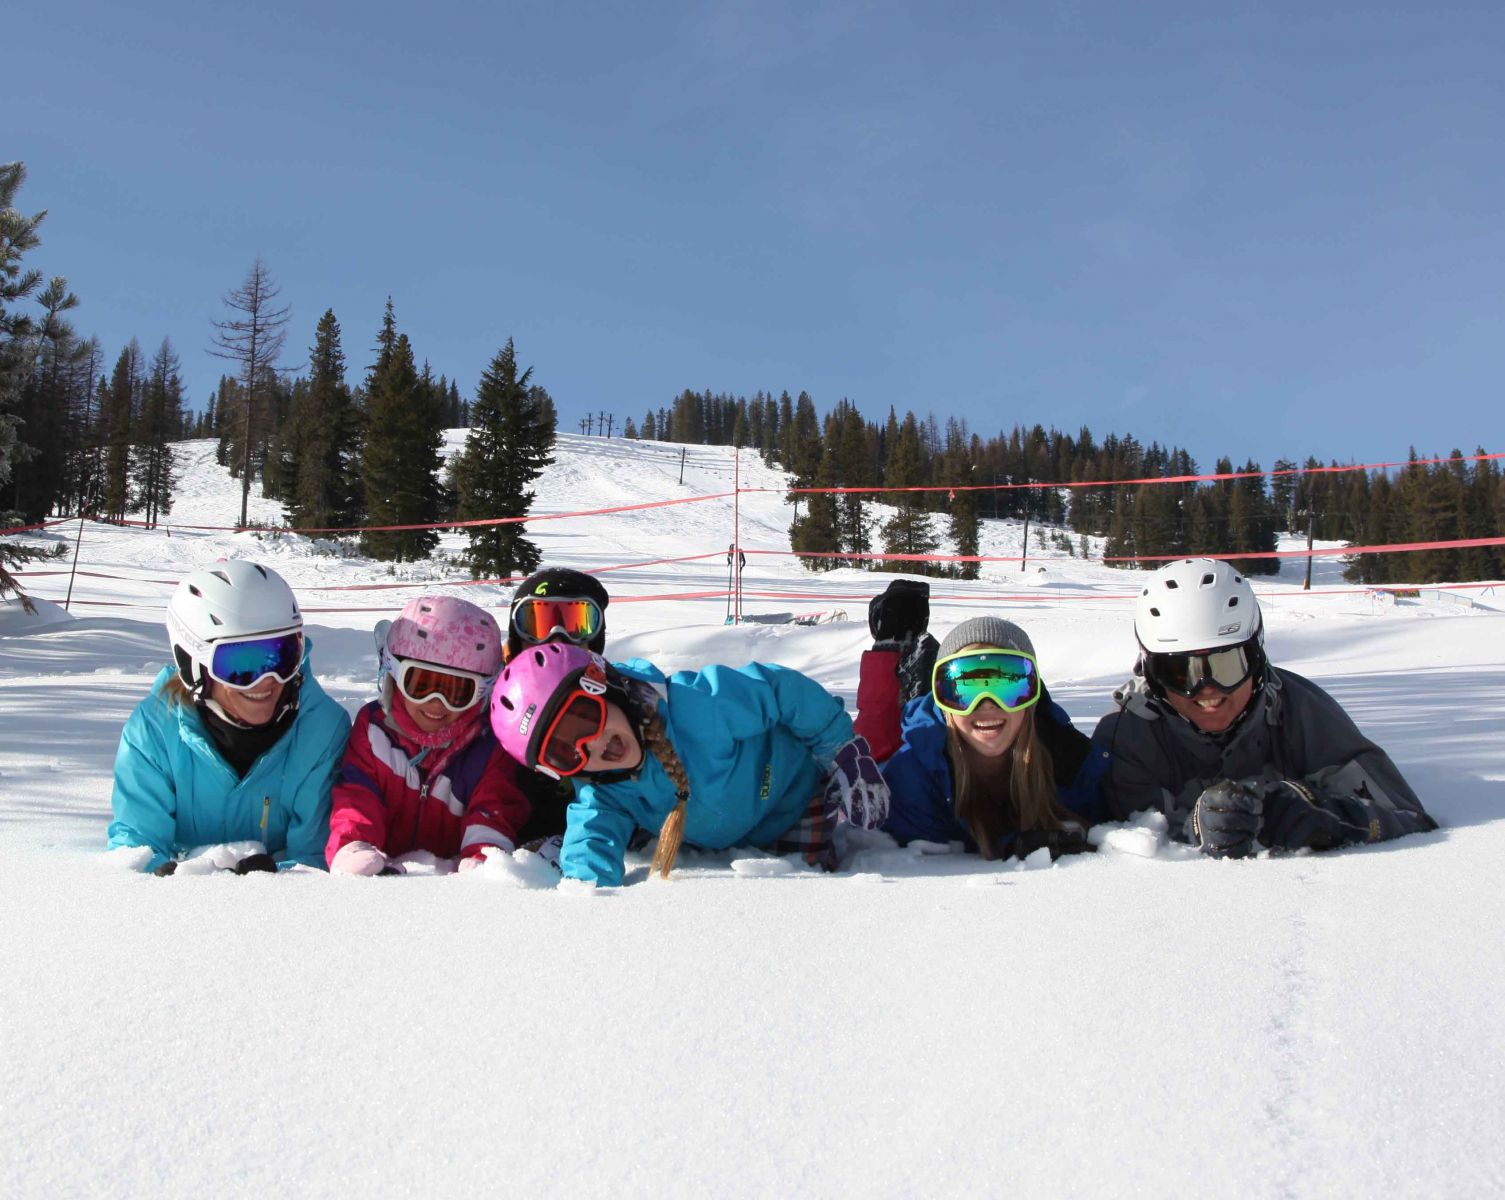 Kids and families playing in the snow at Lookout Pass